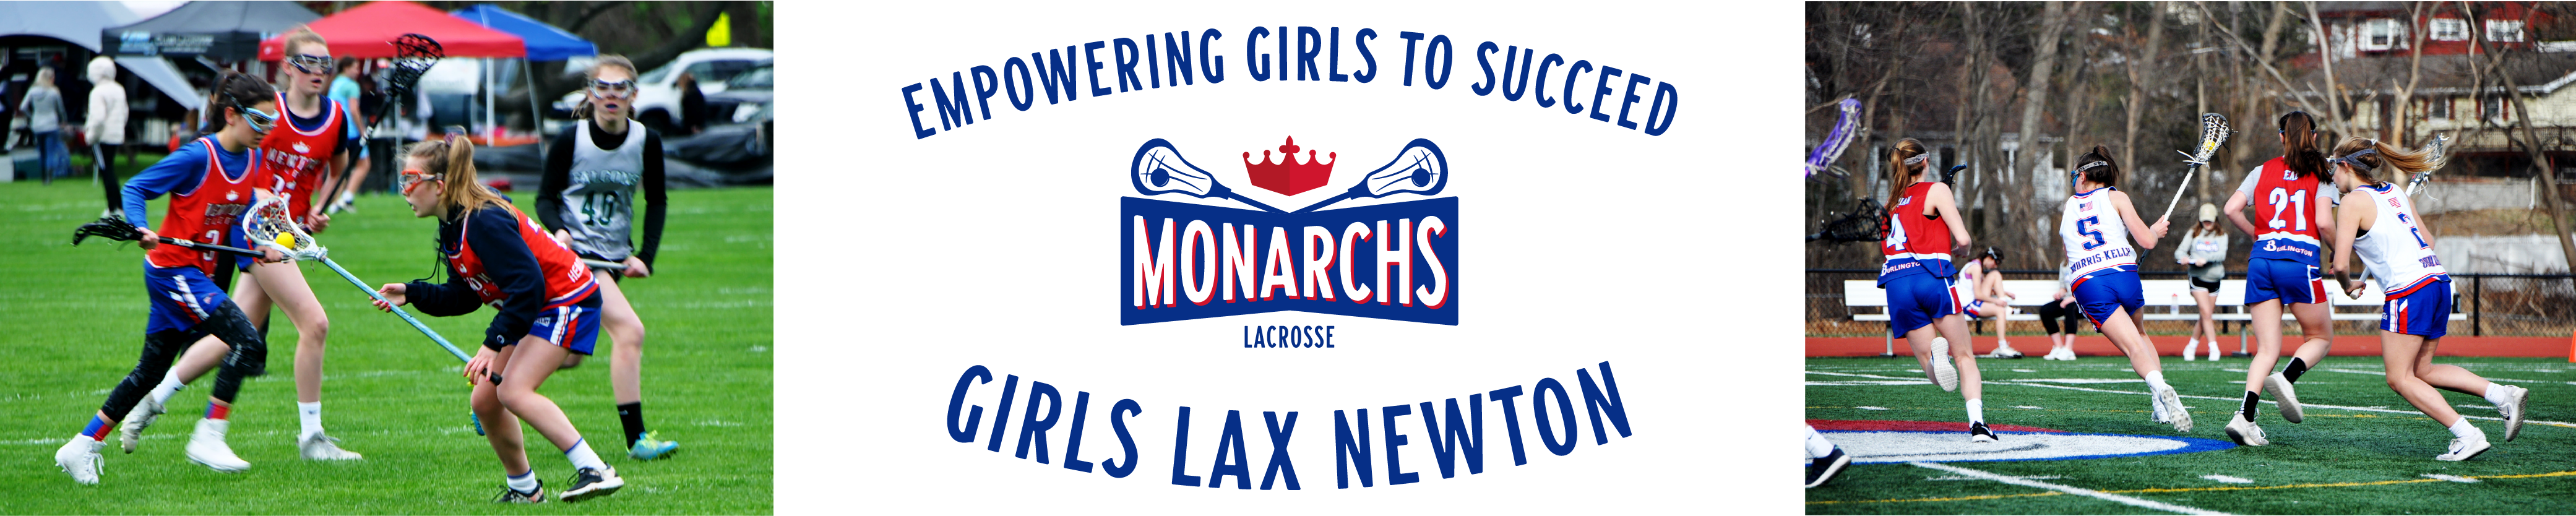 Girls Lax Newton, Lacrosse, Goal, Field